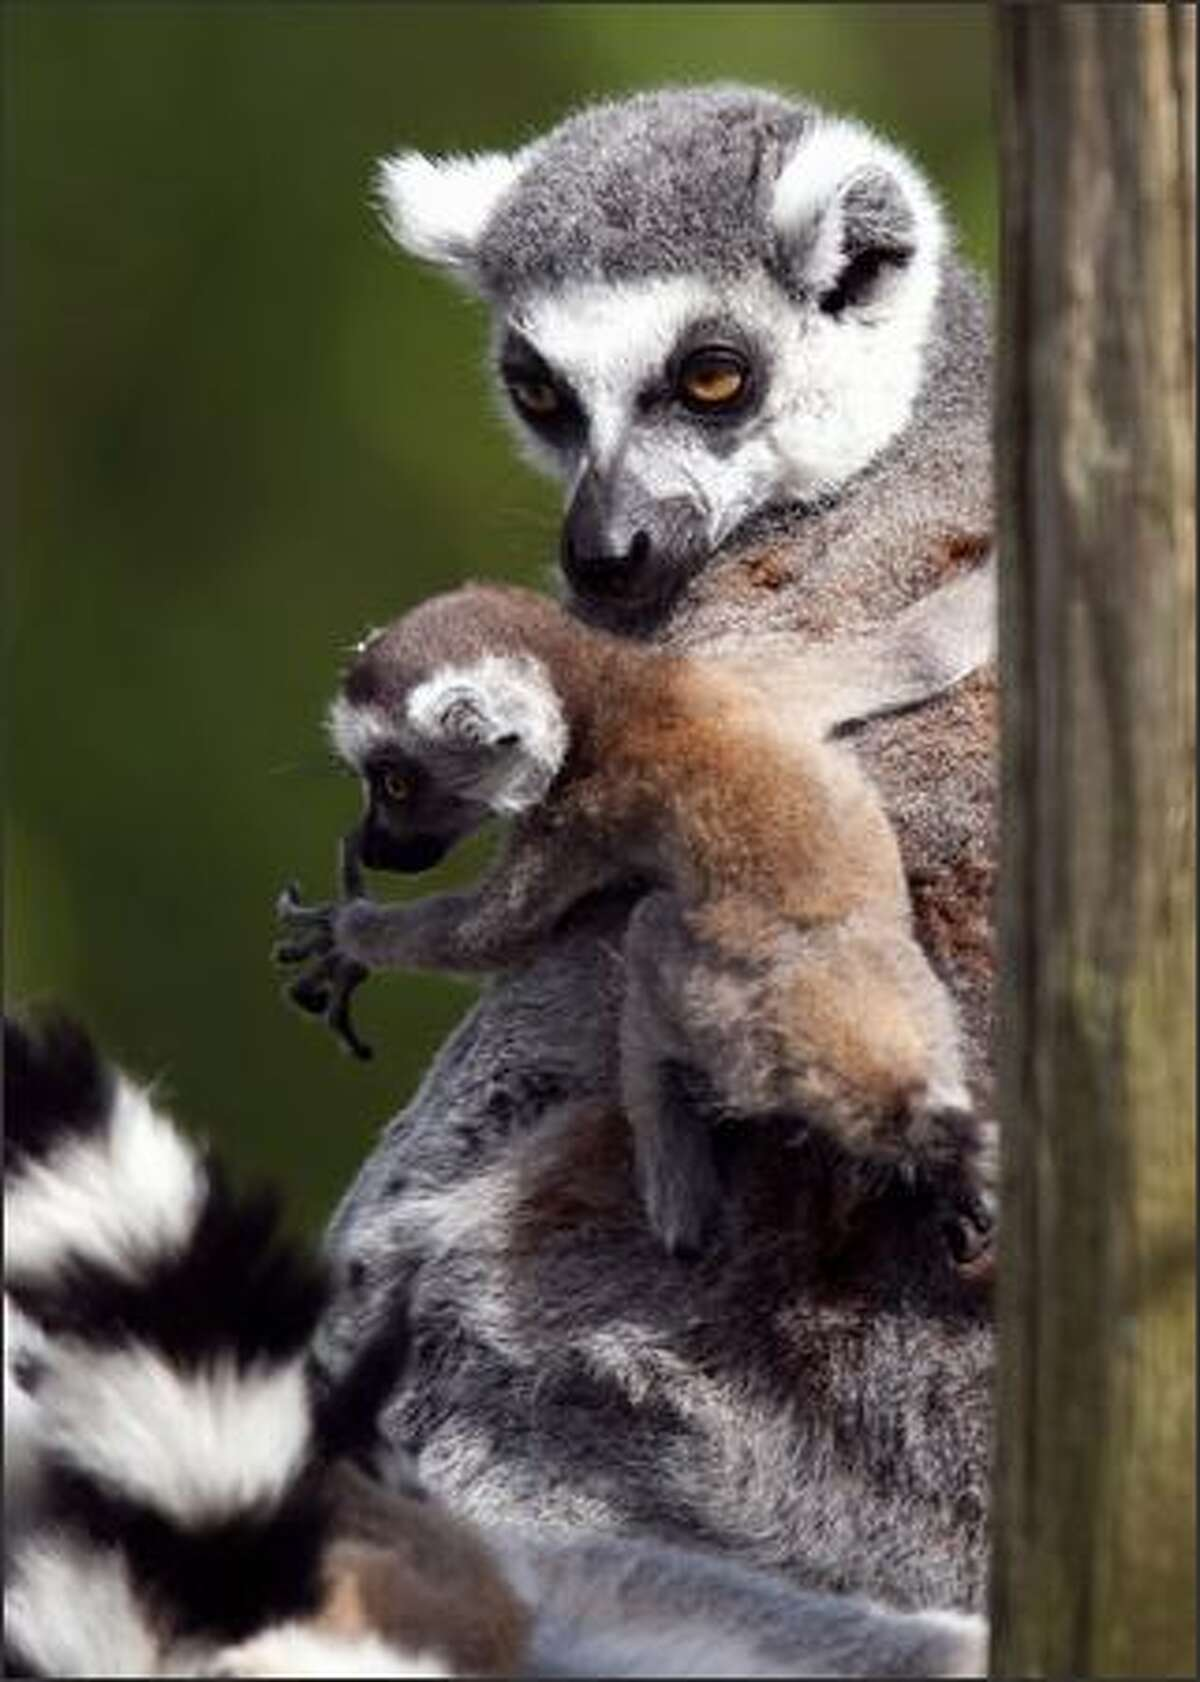 A baby ring-tailed lemur plays with adults at the Amneville zoo in France. The ring-tailed lemur is the most populous lemur in zoos worldwide.